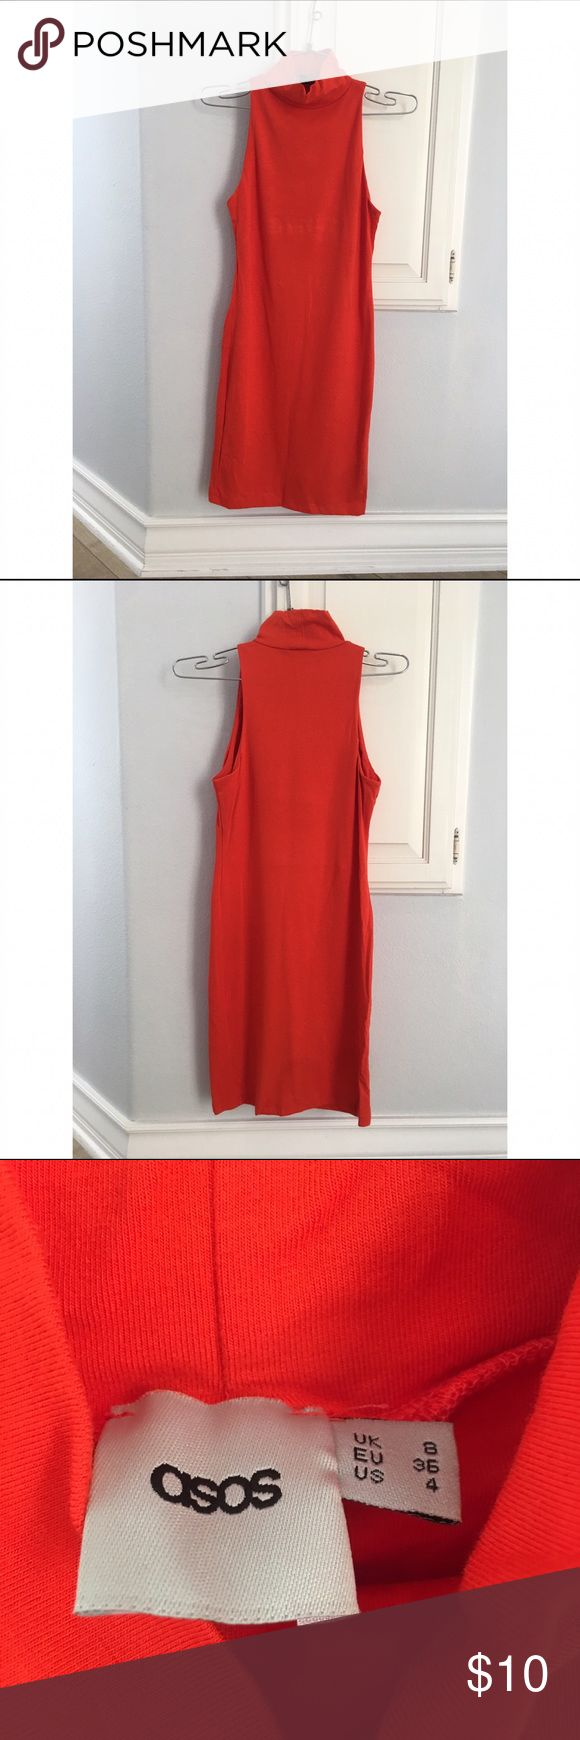 ASOS red dress ASOS red high neck midi dress. So flattering and looks great with heels or sandals. Size 4. 48% cotton, 48% modal, 4% elastane. Perfect condition ASOS Dresses Midi